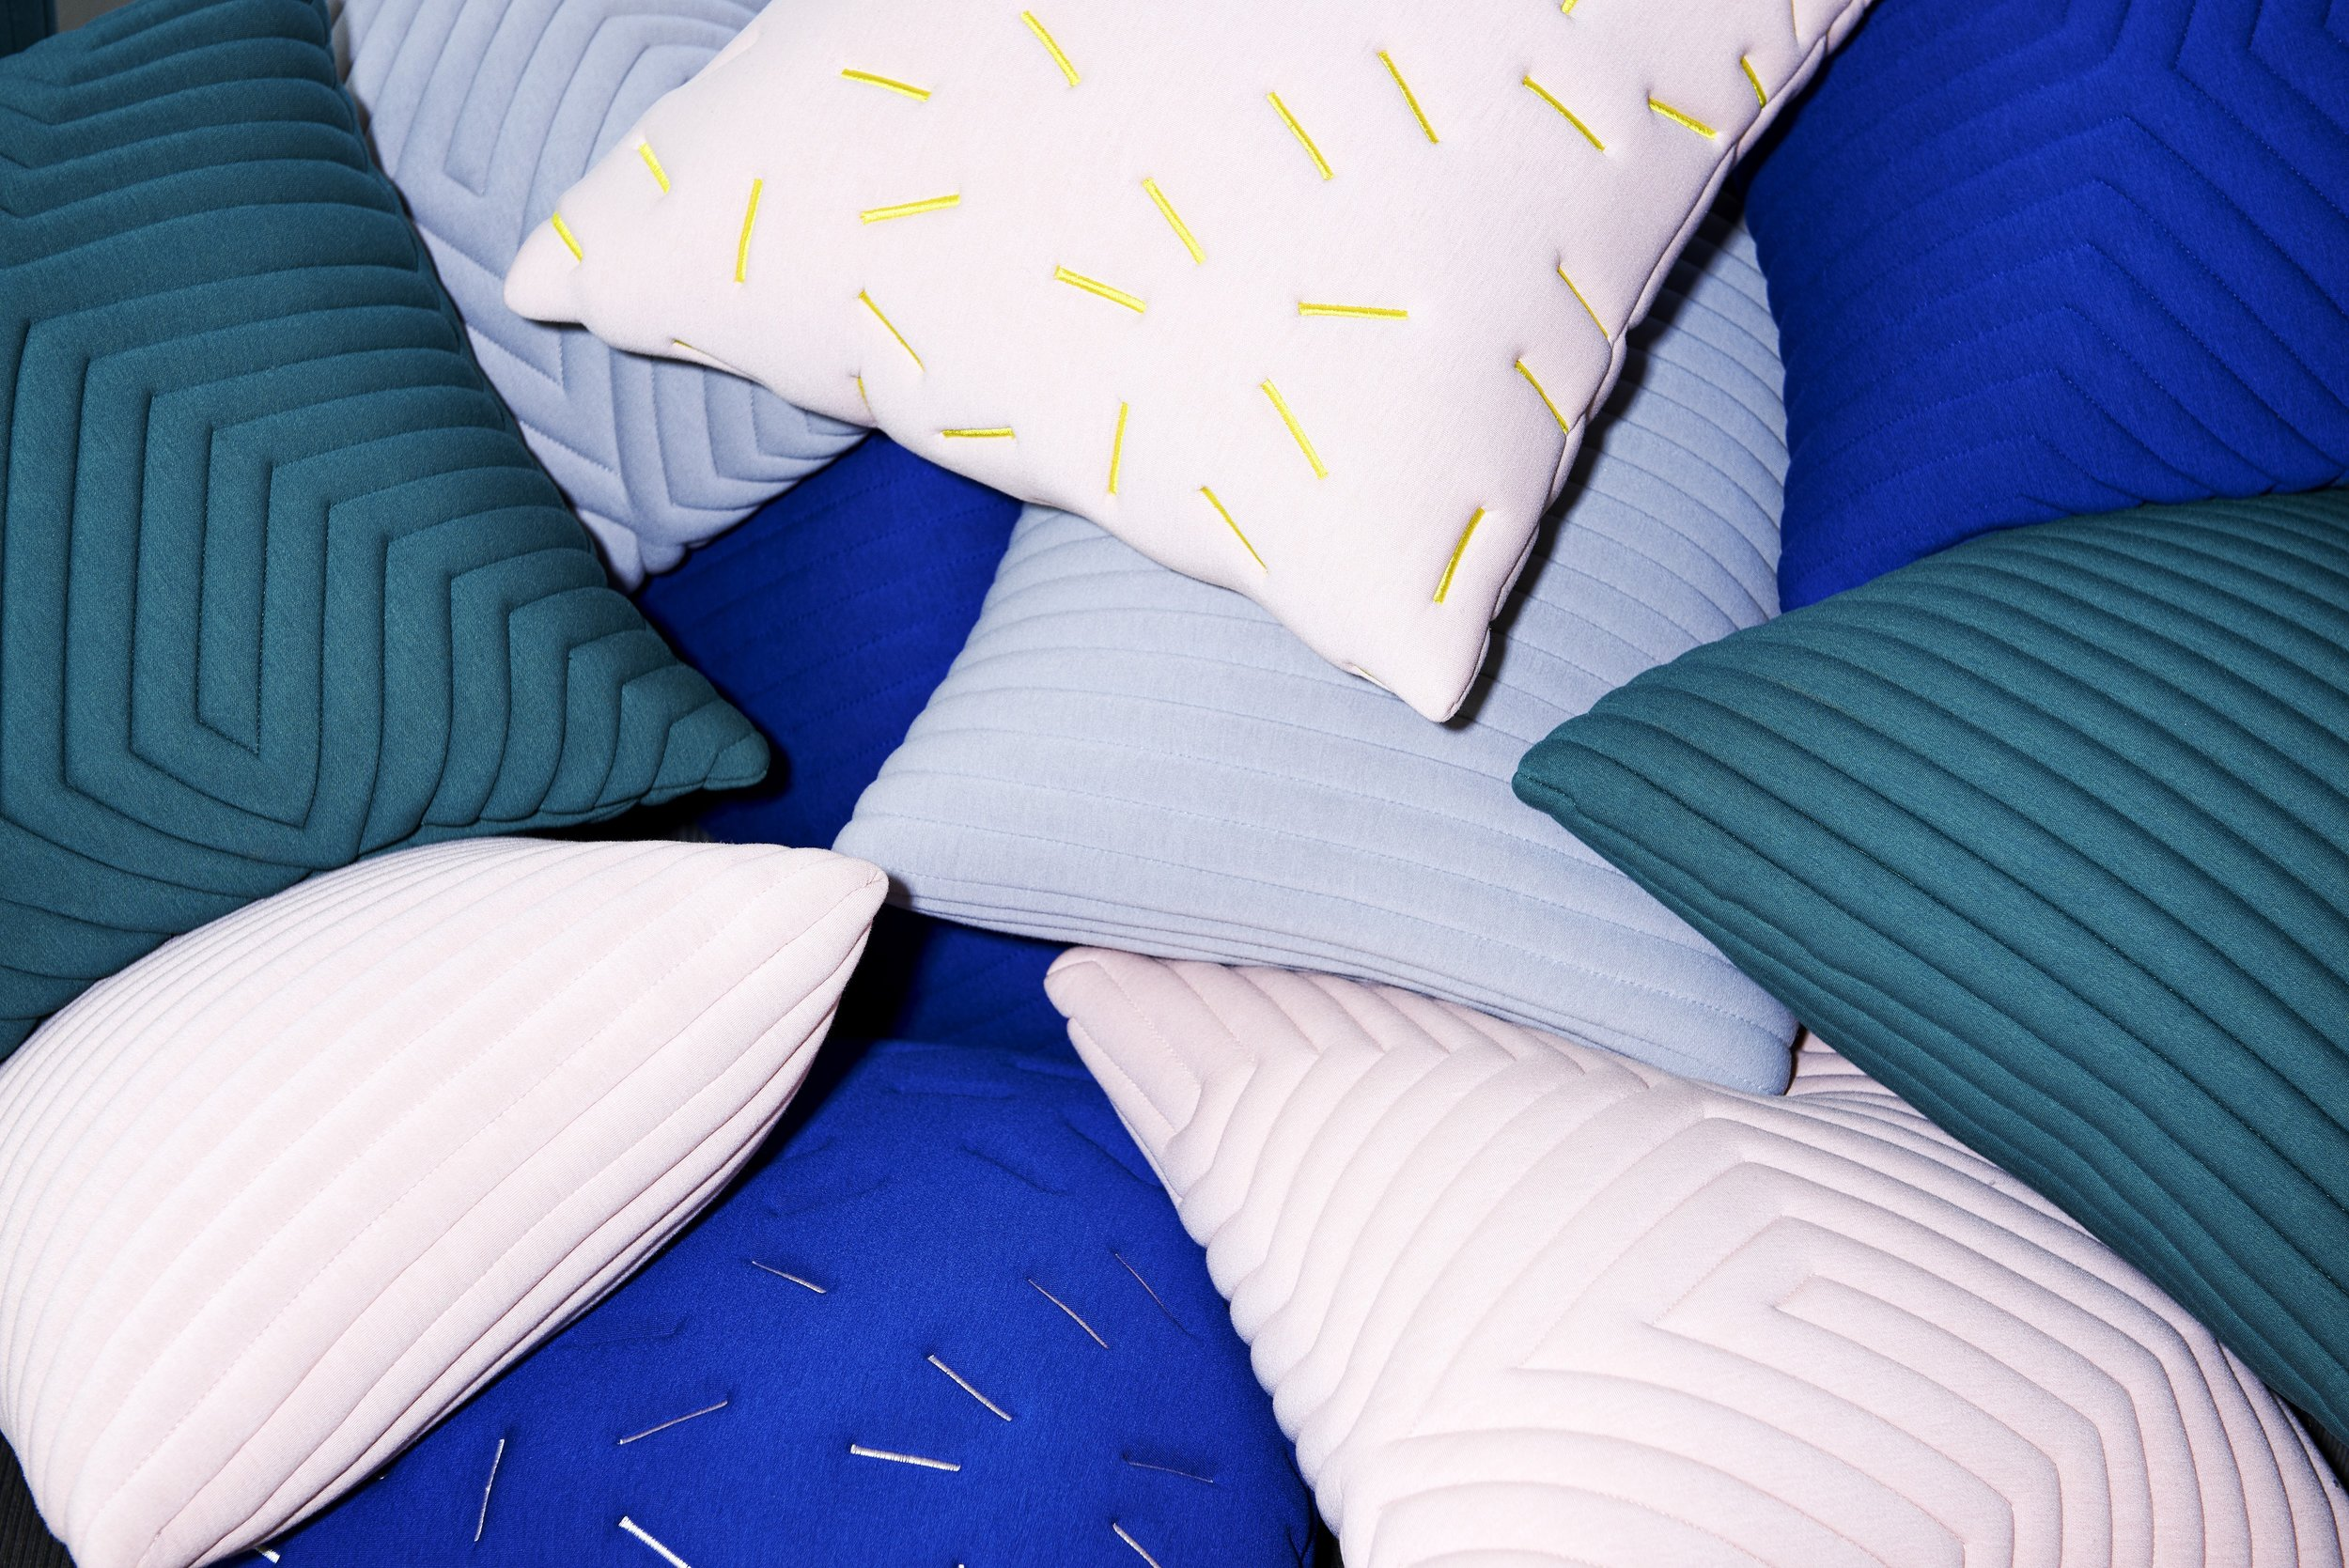 Textile products for Nomess Copenhagen, collections AW16 & AW18